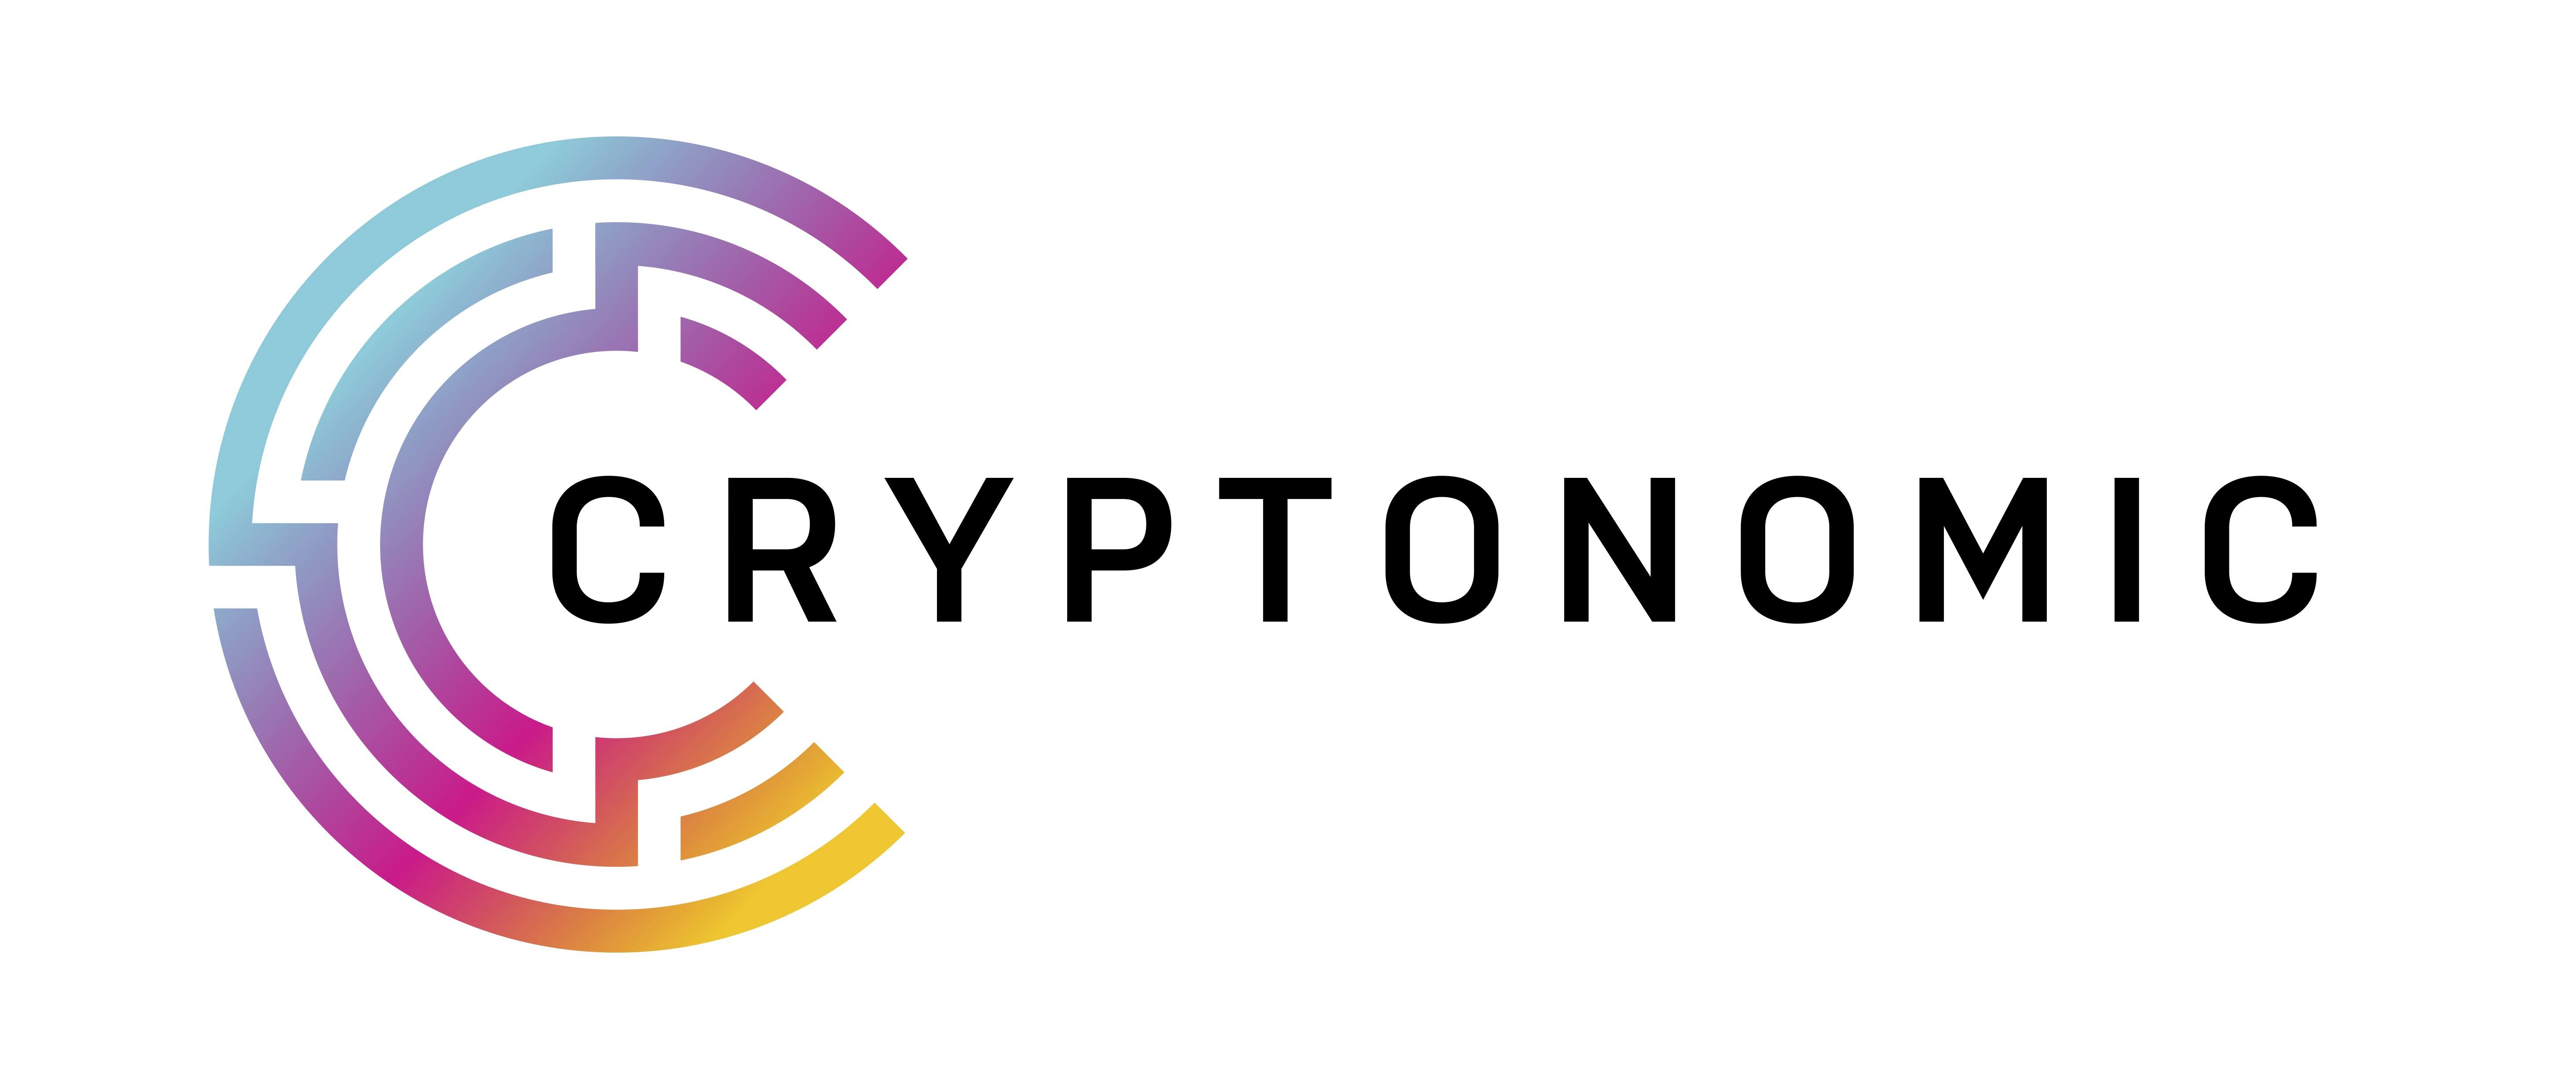 Cryptonomic Help Center home page